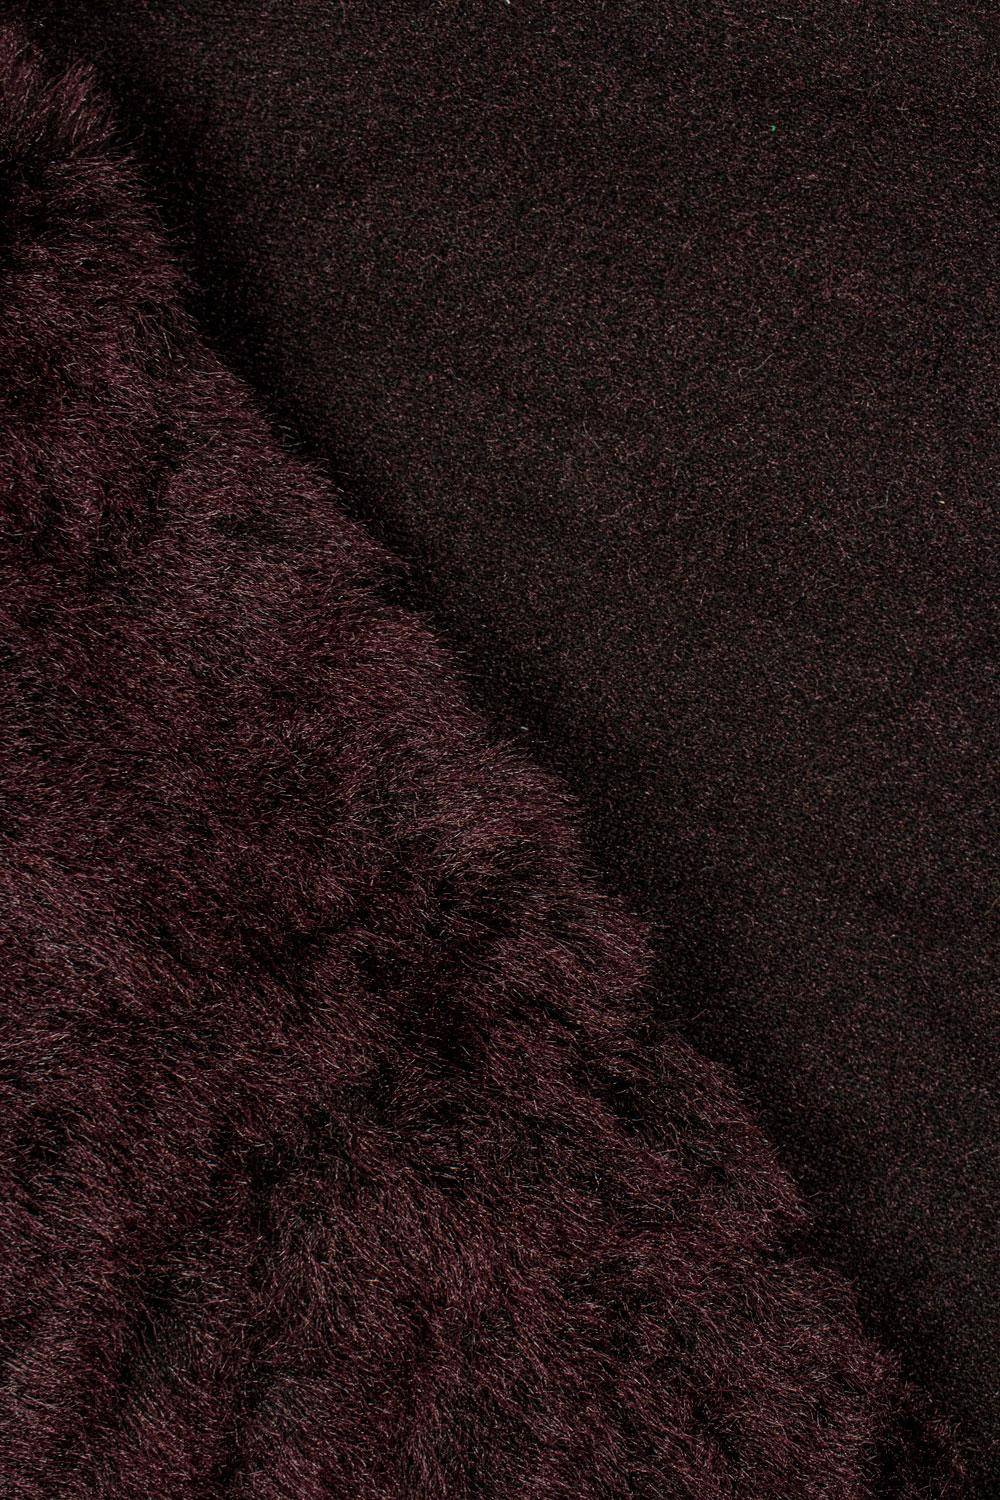 Fabric - Eco Fur - Burgundy - 150 cm - 570 g/m2